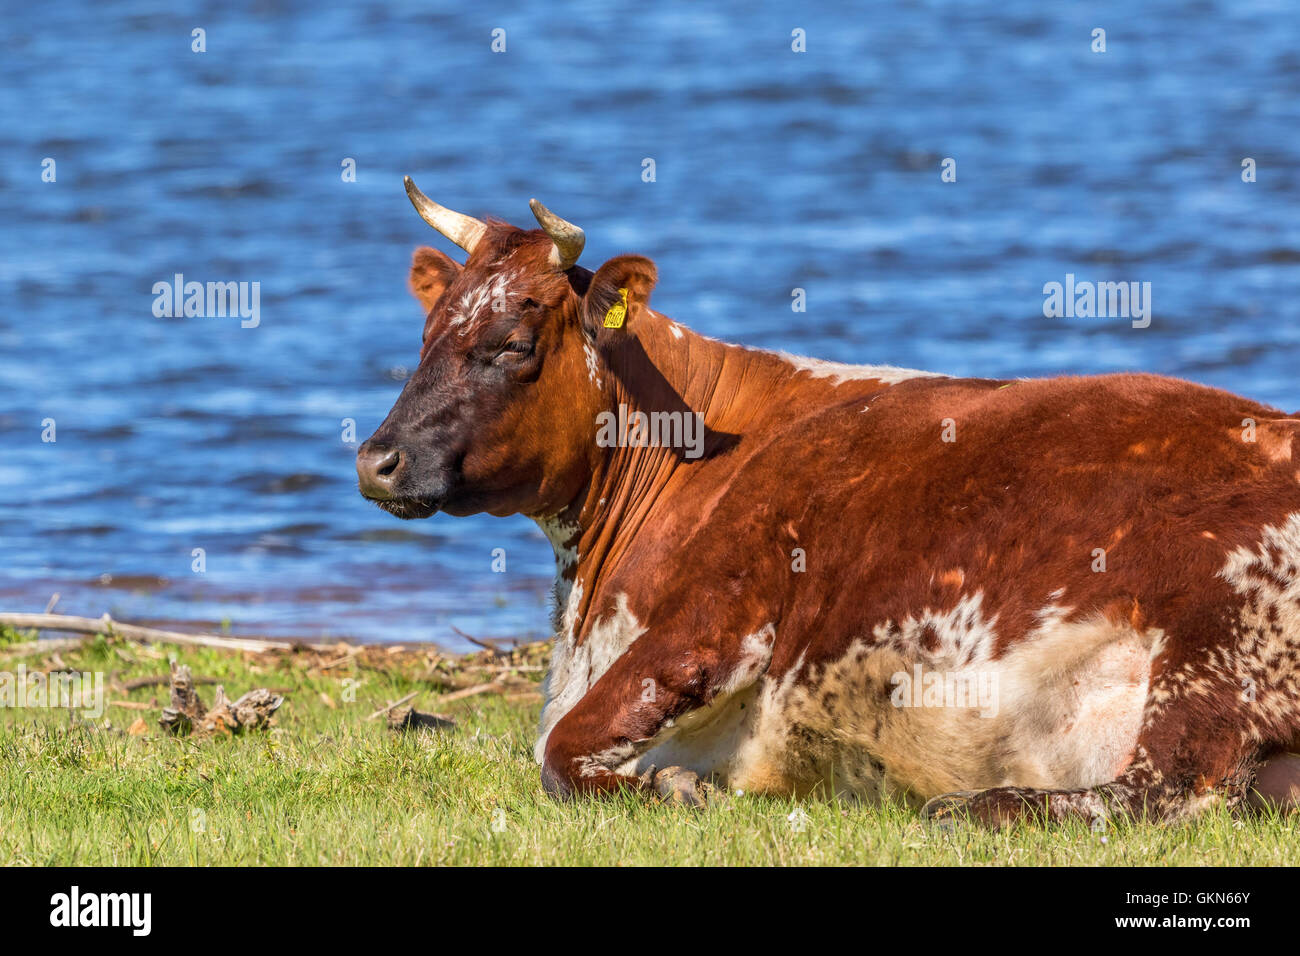 Cow lying and ruminating at the lake - Stock Image